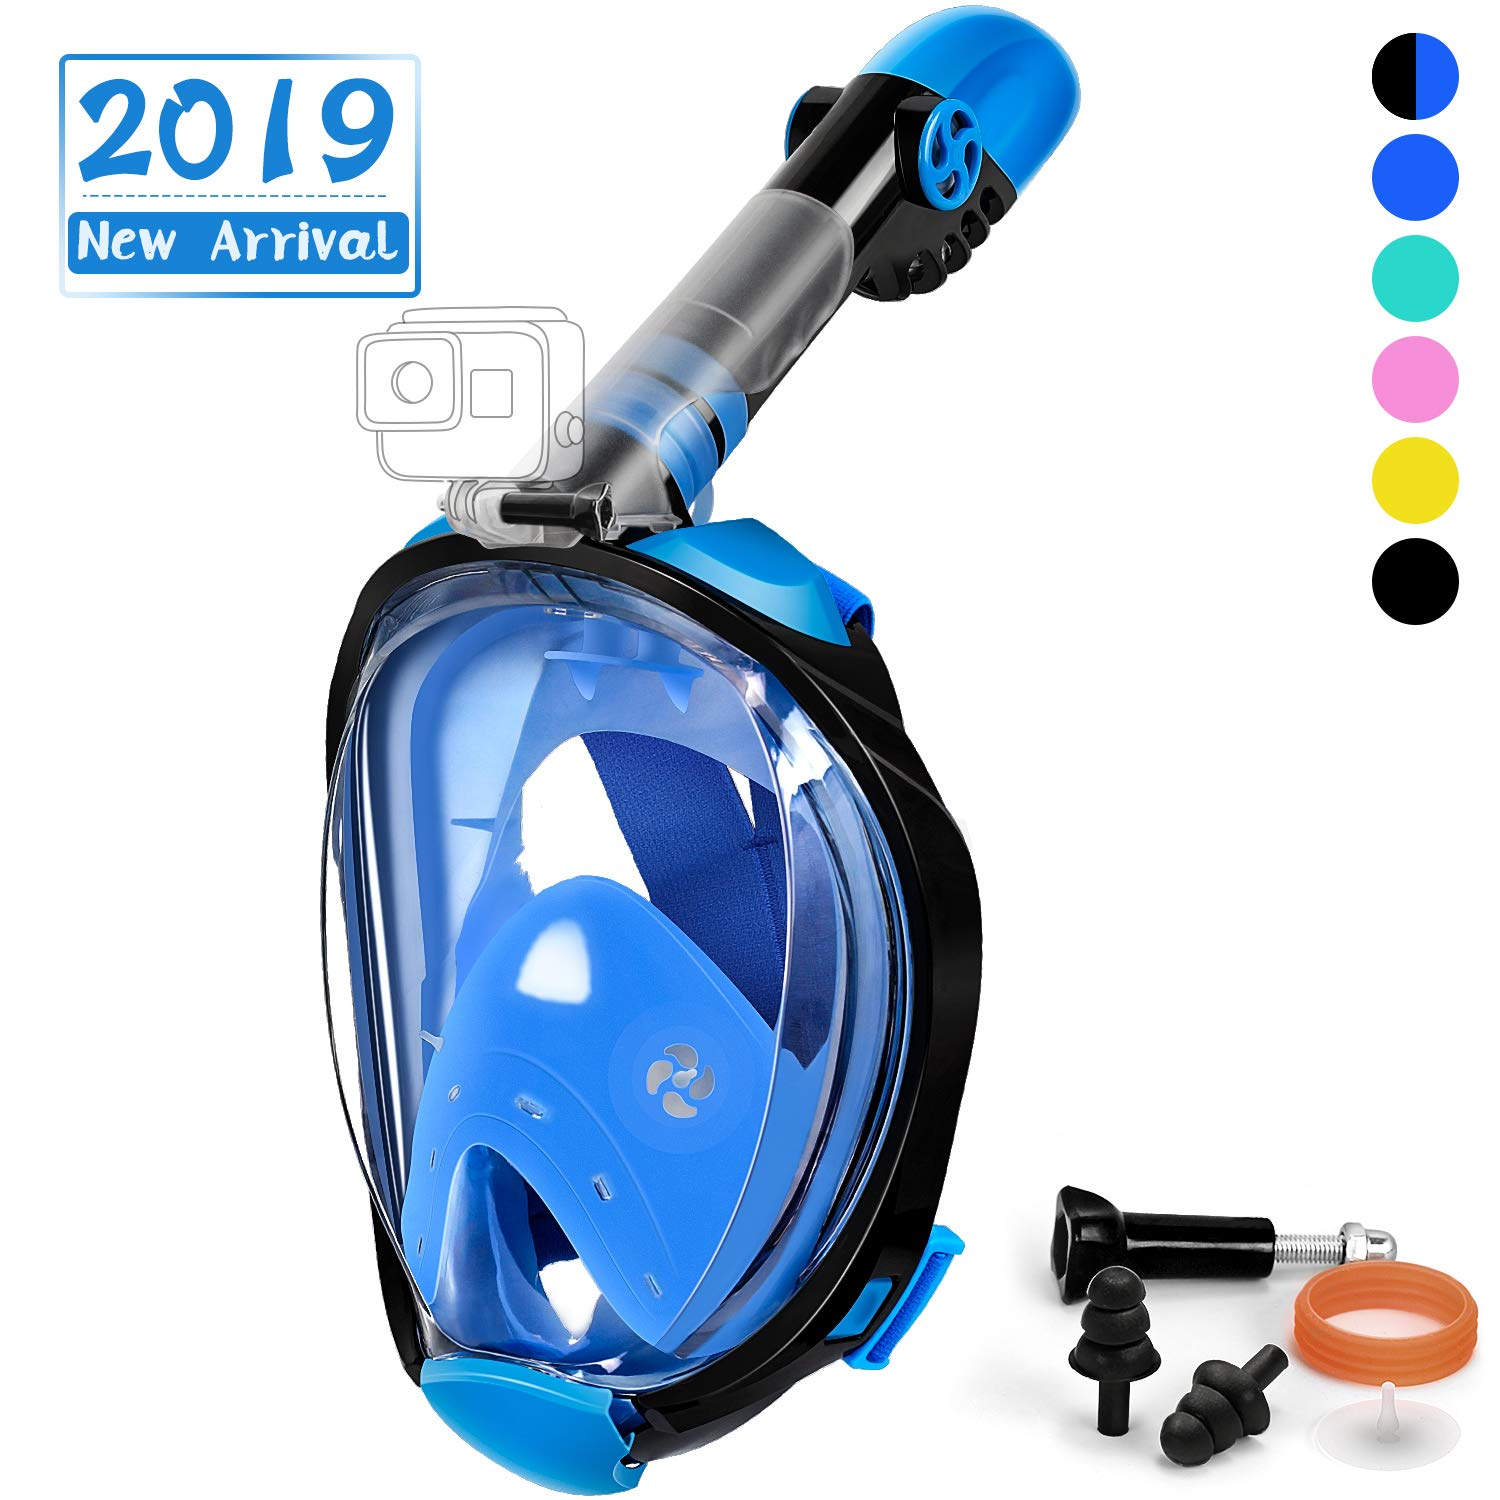 OUSPT Full Face Snorkel Mask, Snorkeling Mask with Detachable Camera Mount, Panoramic 180° View Upgraded Dive Mask with Newest Breathing System, Dry Top Set Anti-Fog Anti-Leak (Blue, S/M) by OUSPT